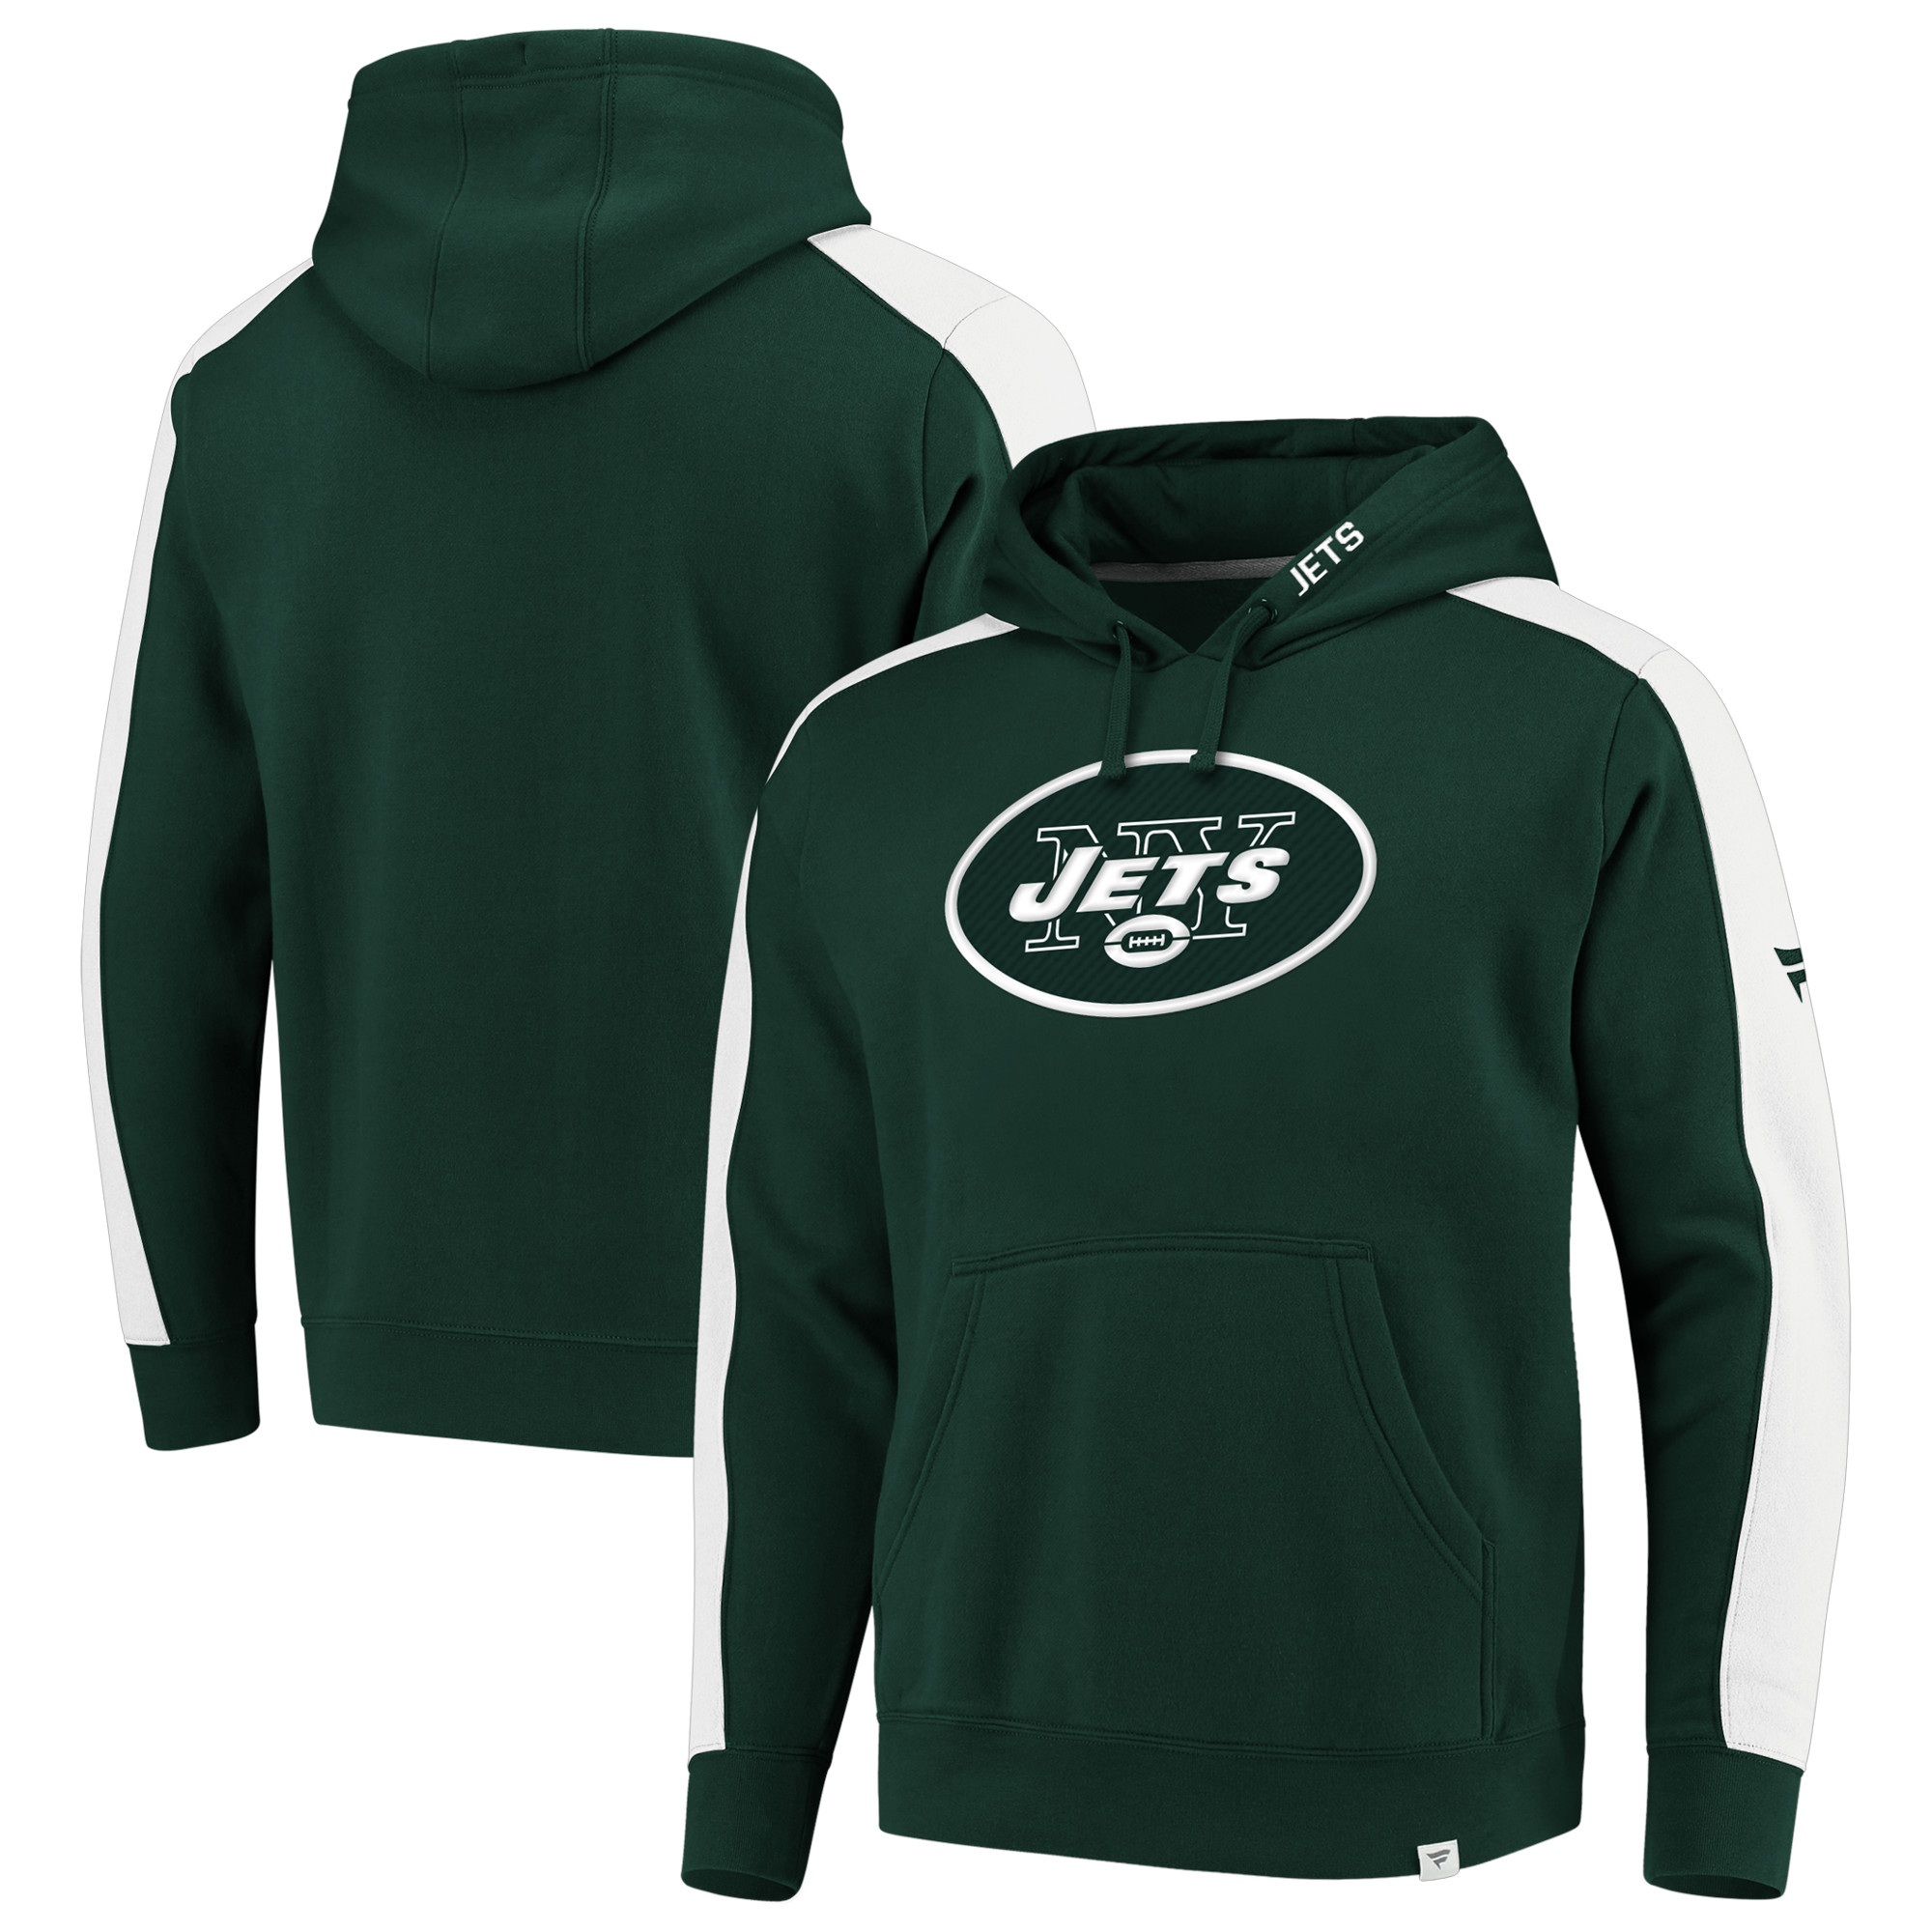 New York Jets NFL Pro Line by Fanatics Branded Iconic Pullover Hoodie - Green/White - 5XL